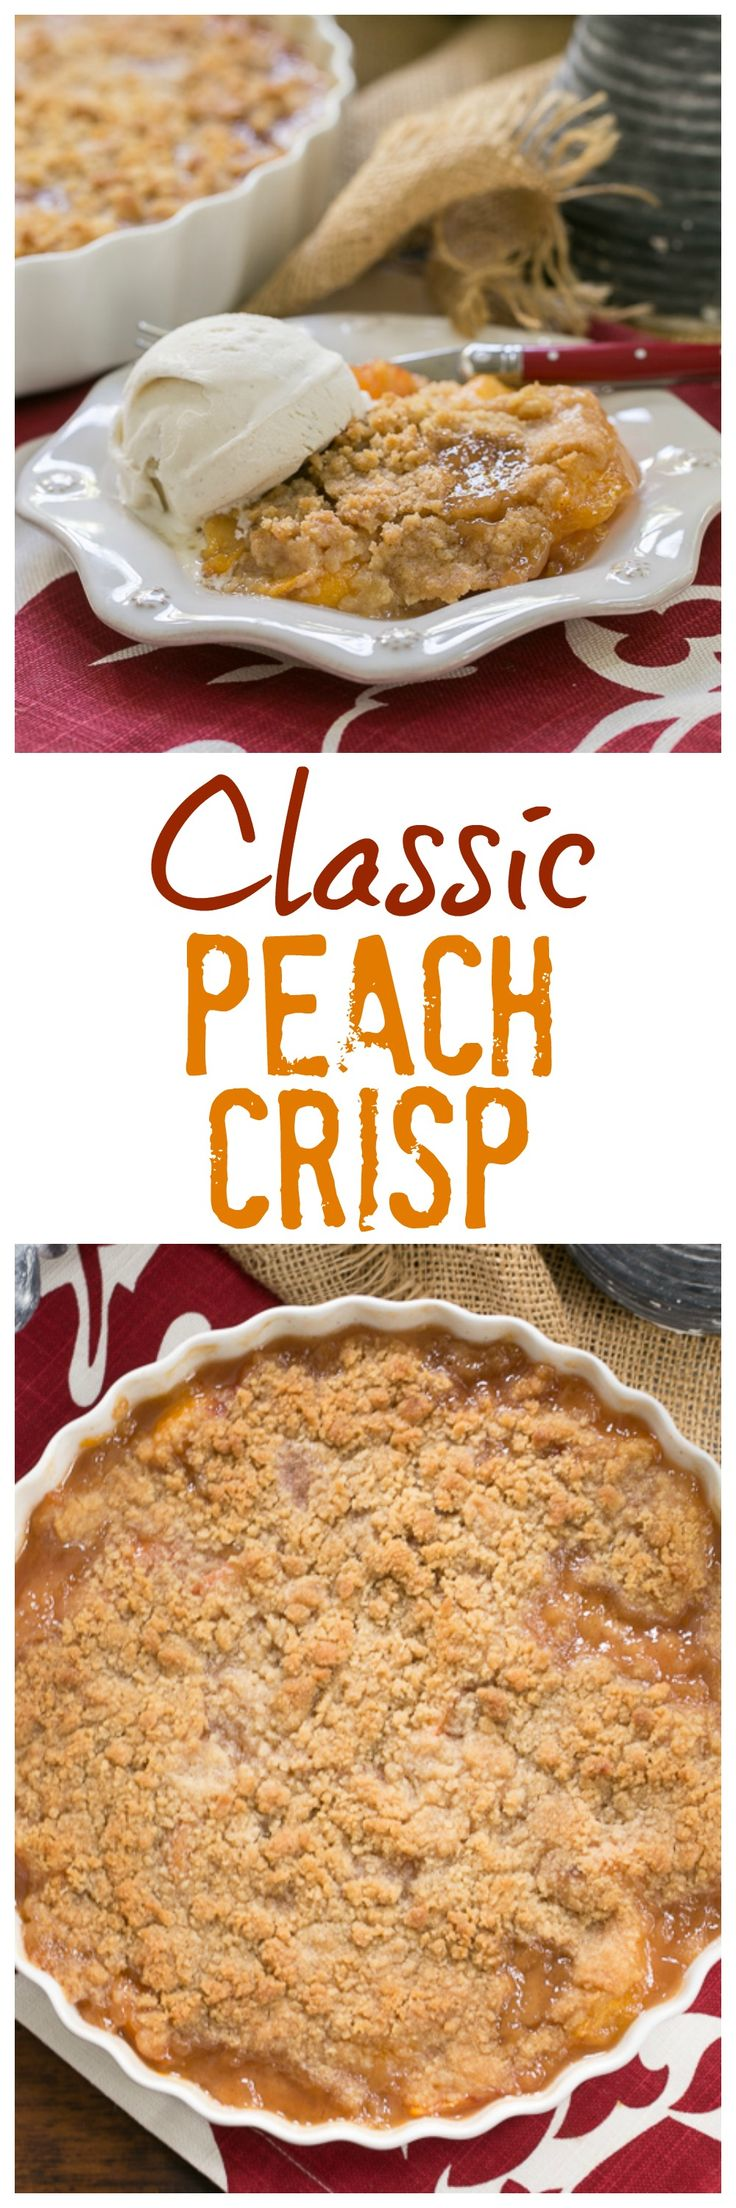 Peach Crisp | Sweetened peaches with a buttery, brown sugar crisp topping @lizzydo